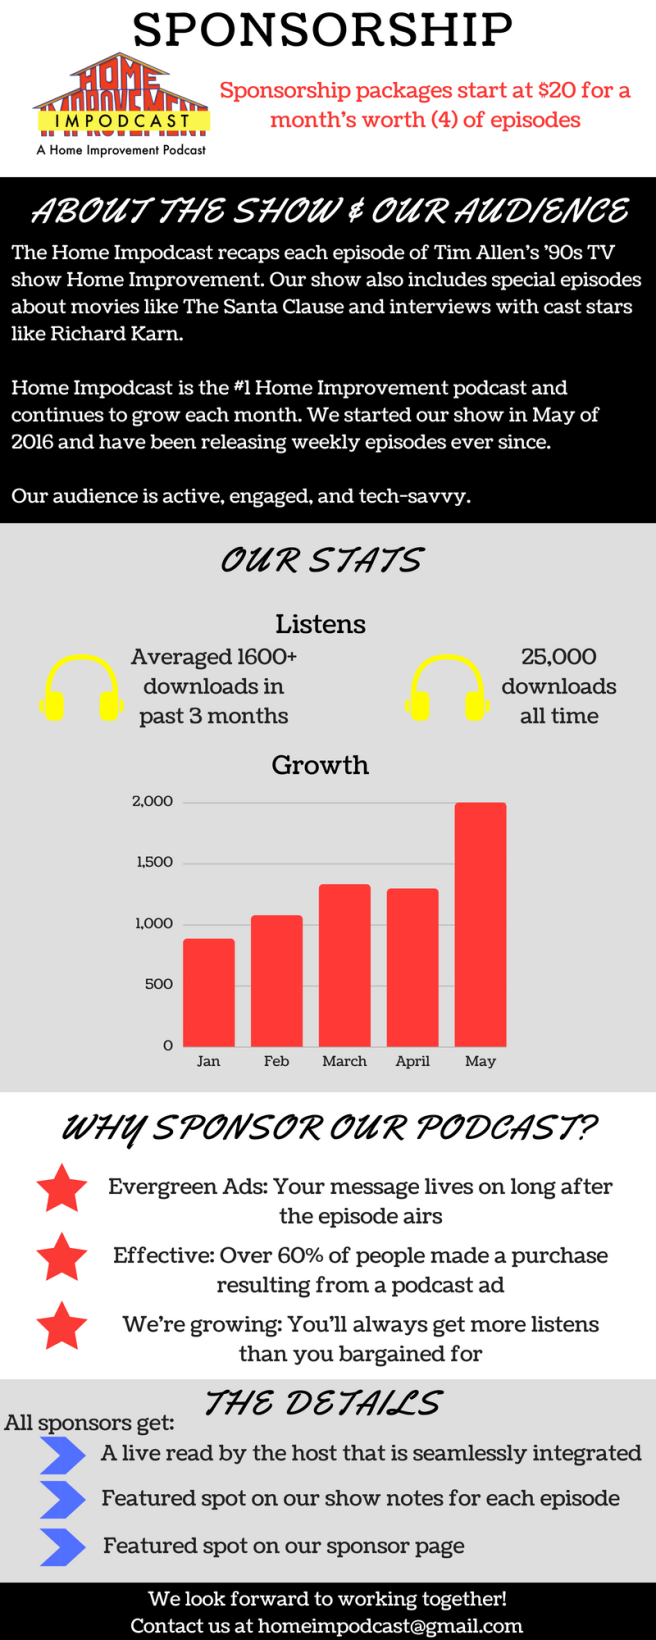 Home Impodcast Sponsorship Infographic